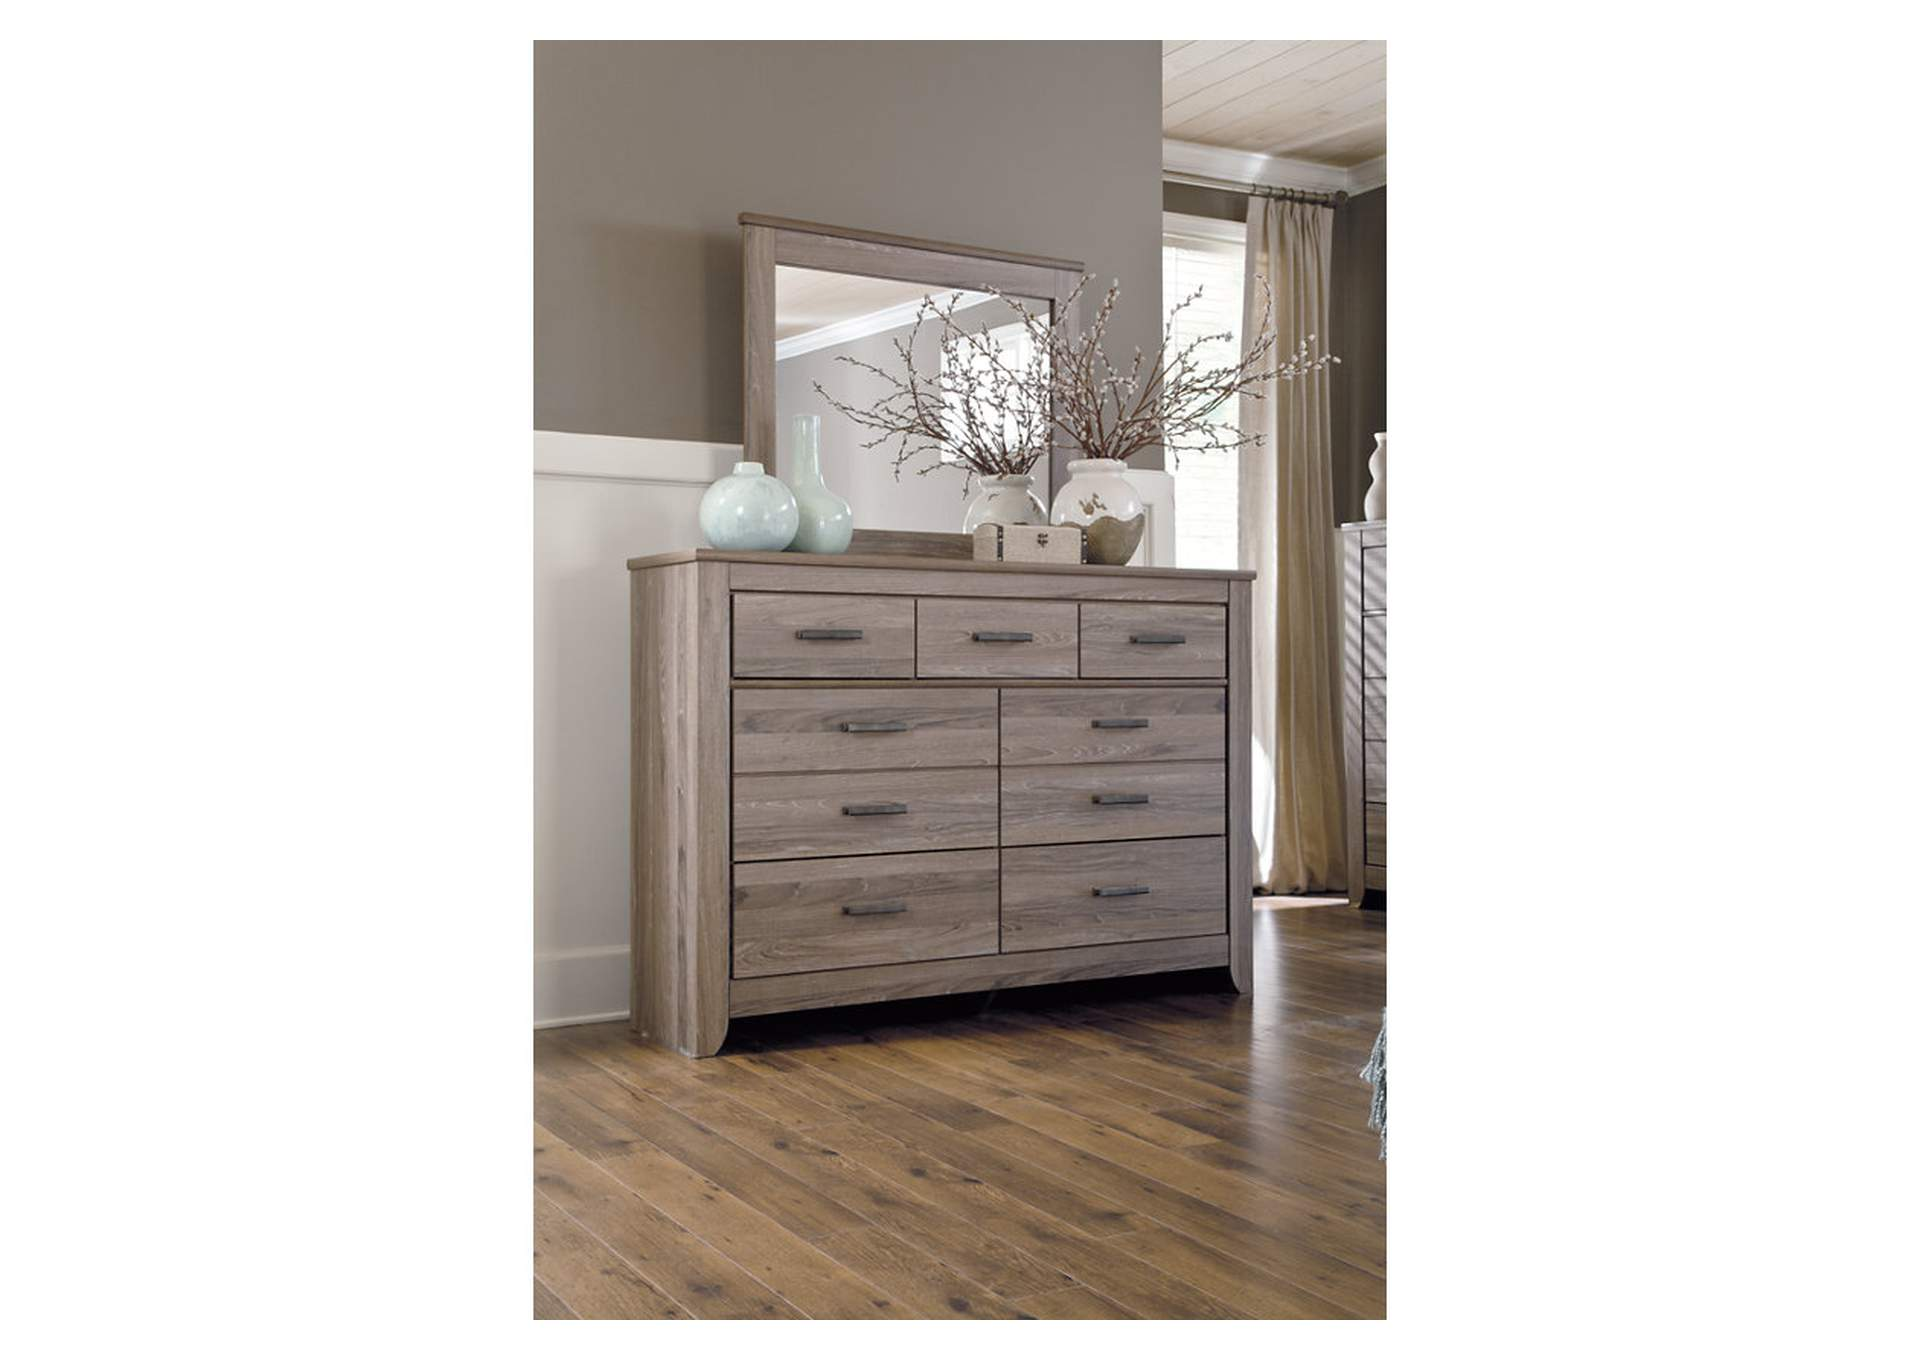 Cozi Furniture New Carrollton Md Zelen Dresser